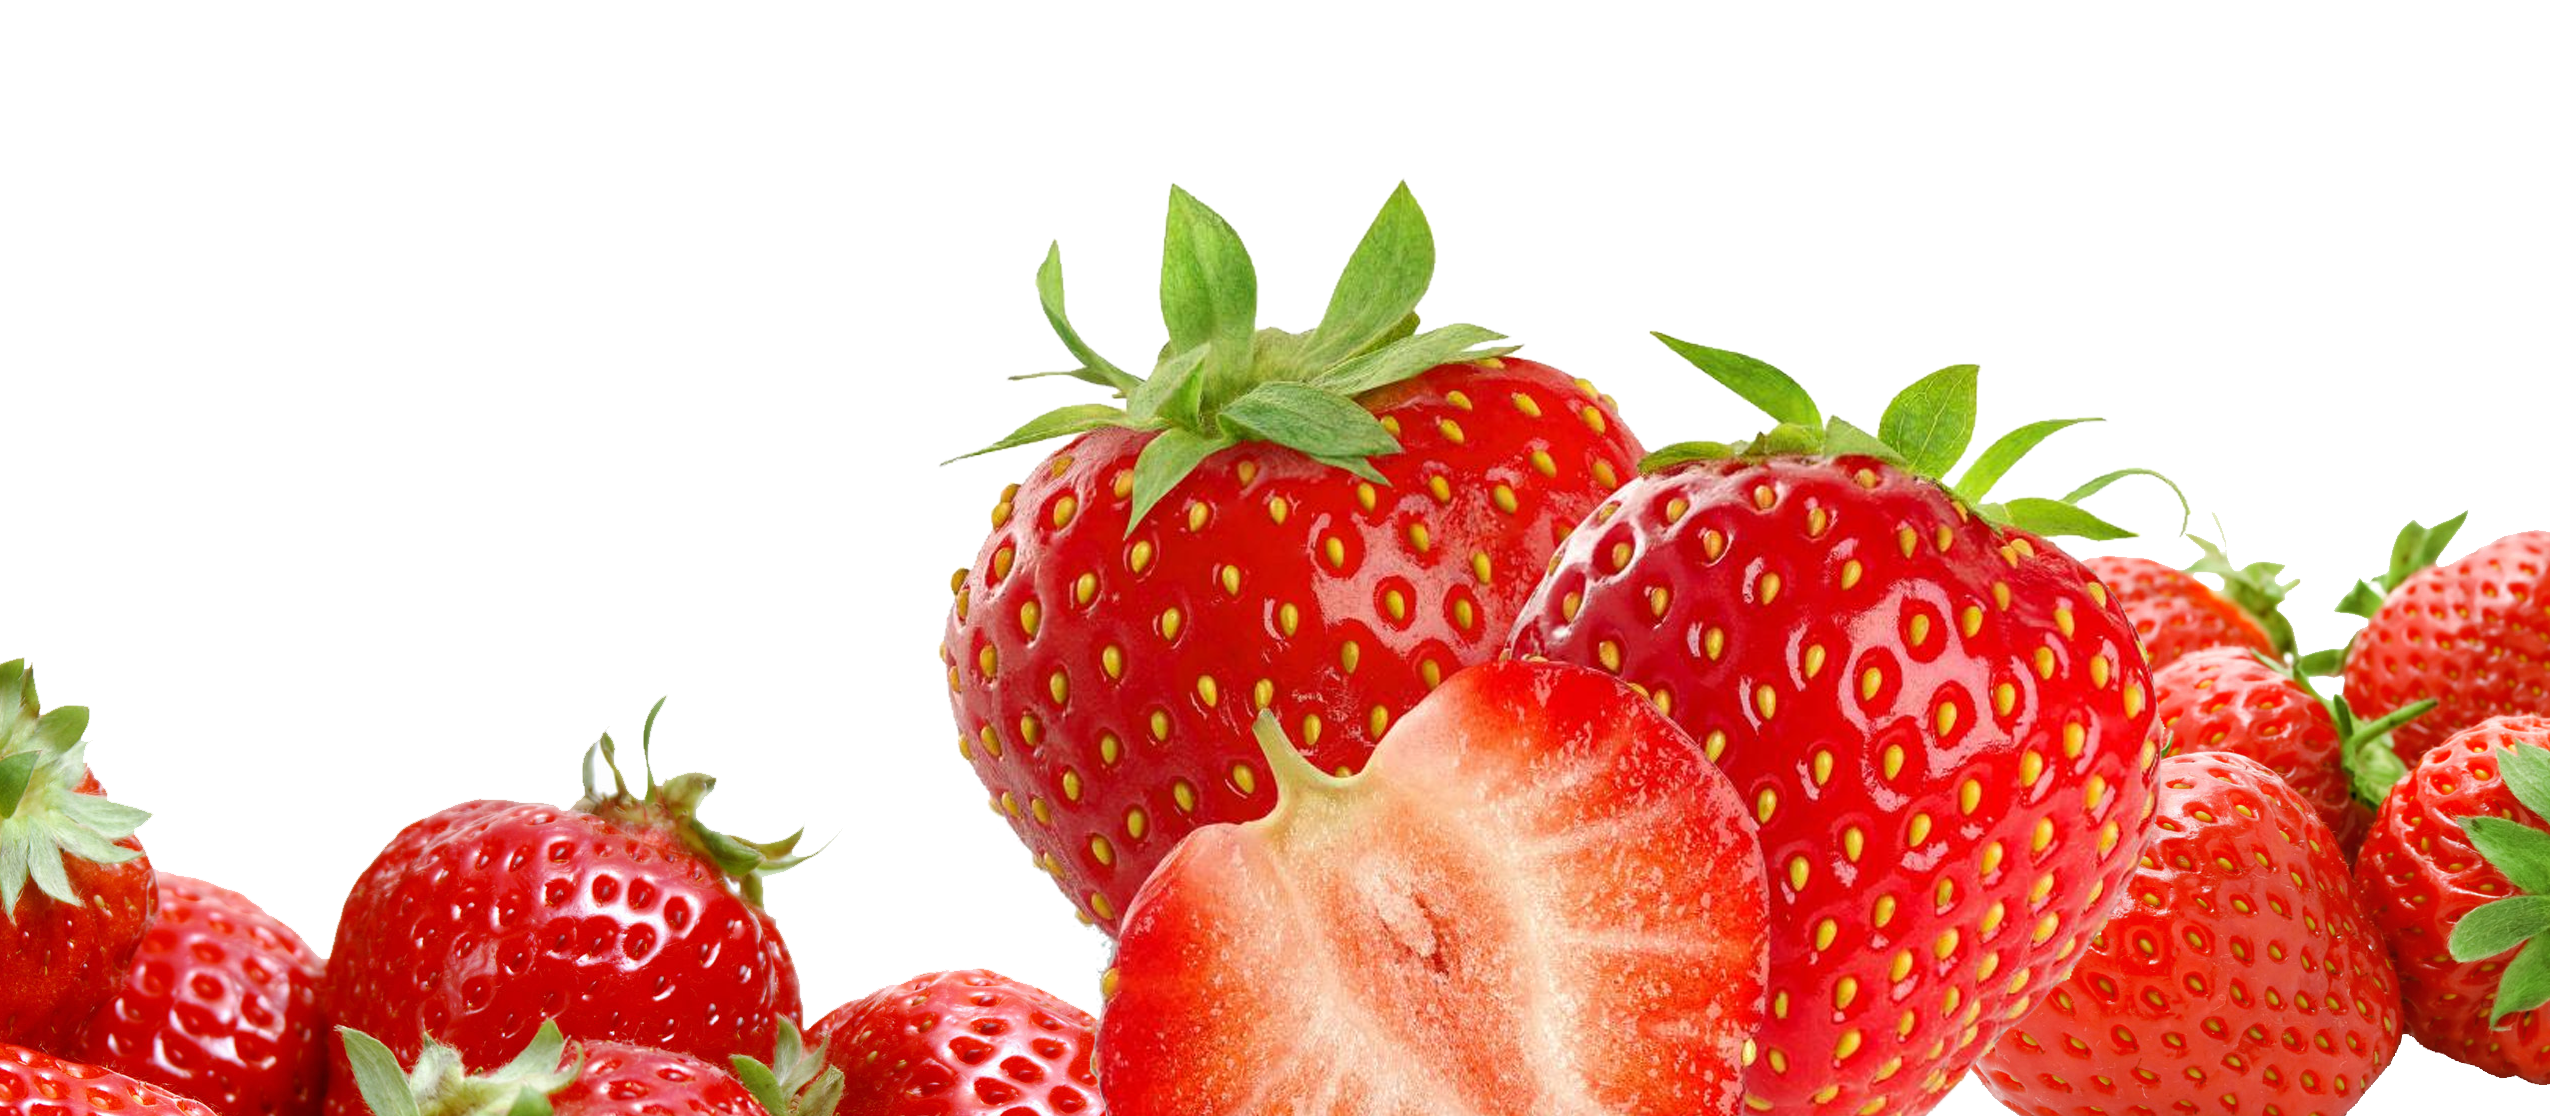 strawberry png - Strawberry PNG